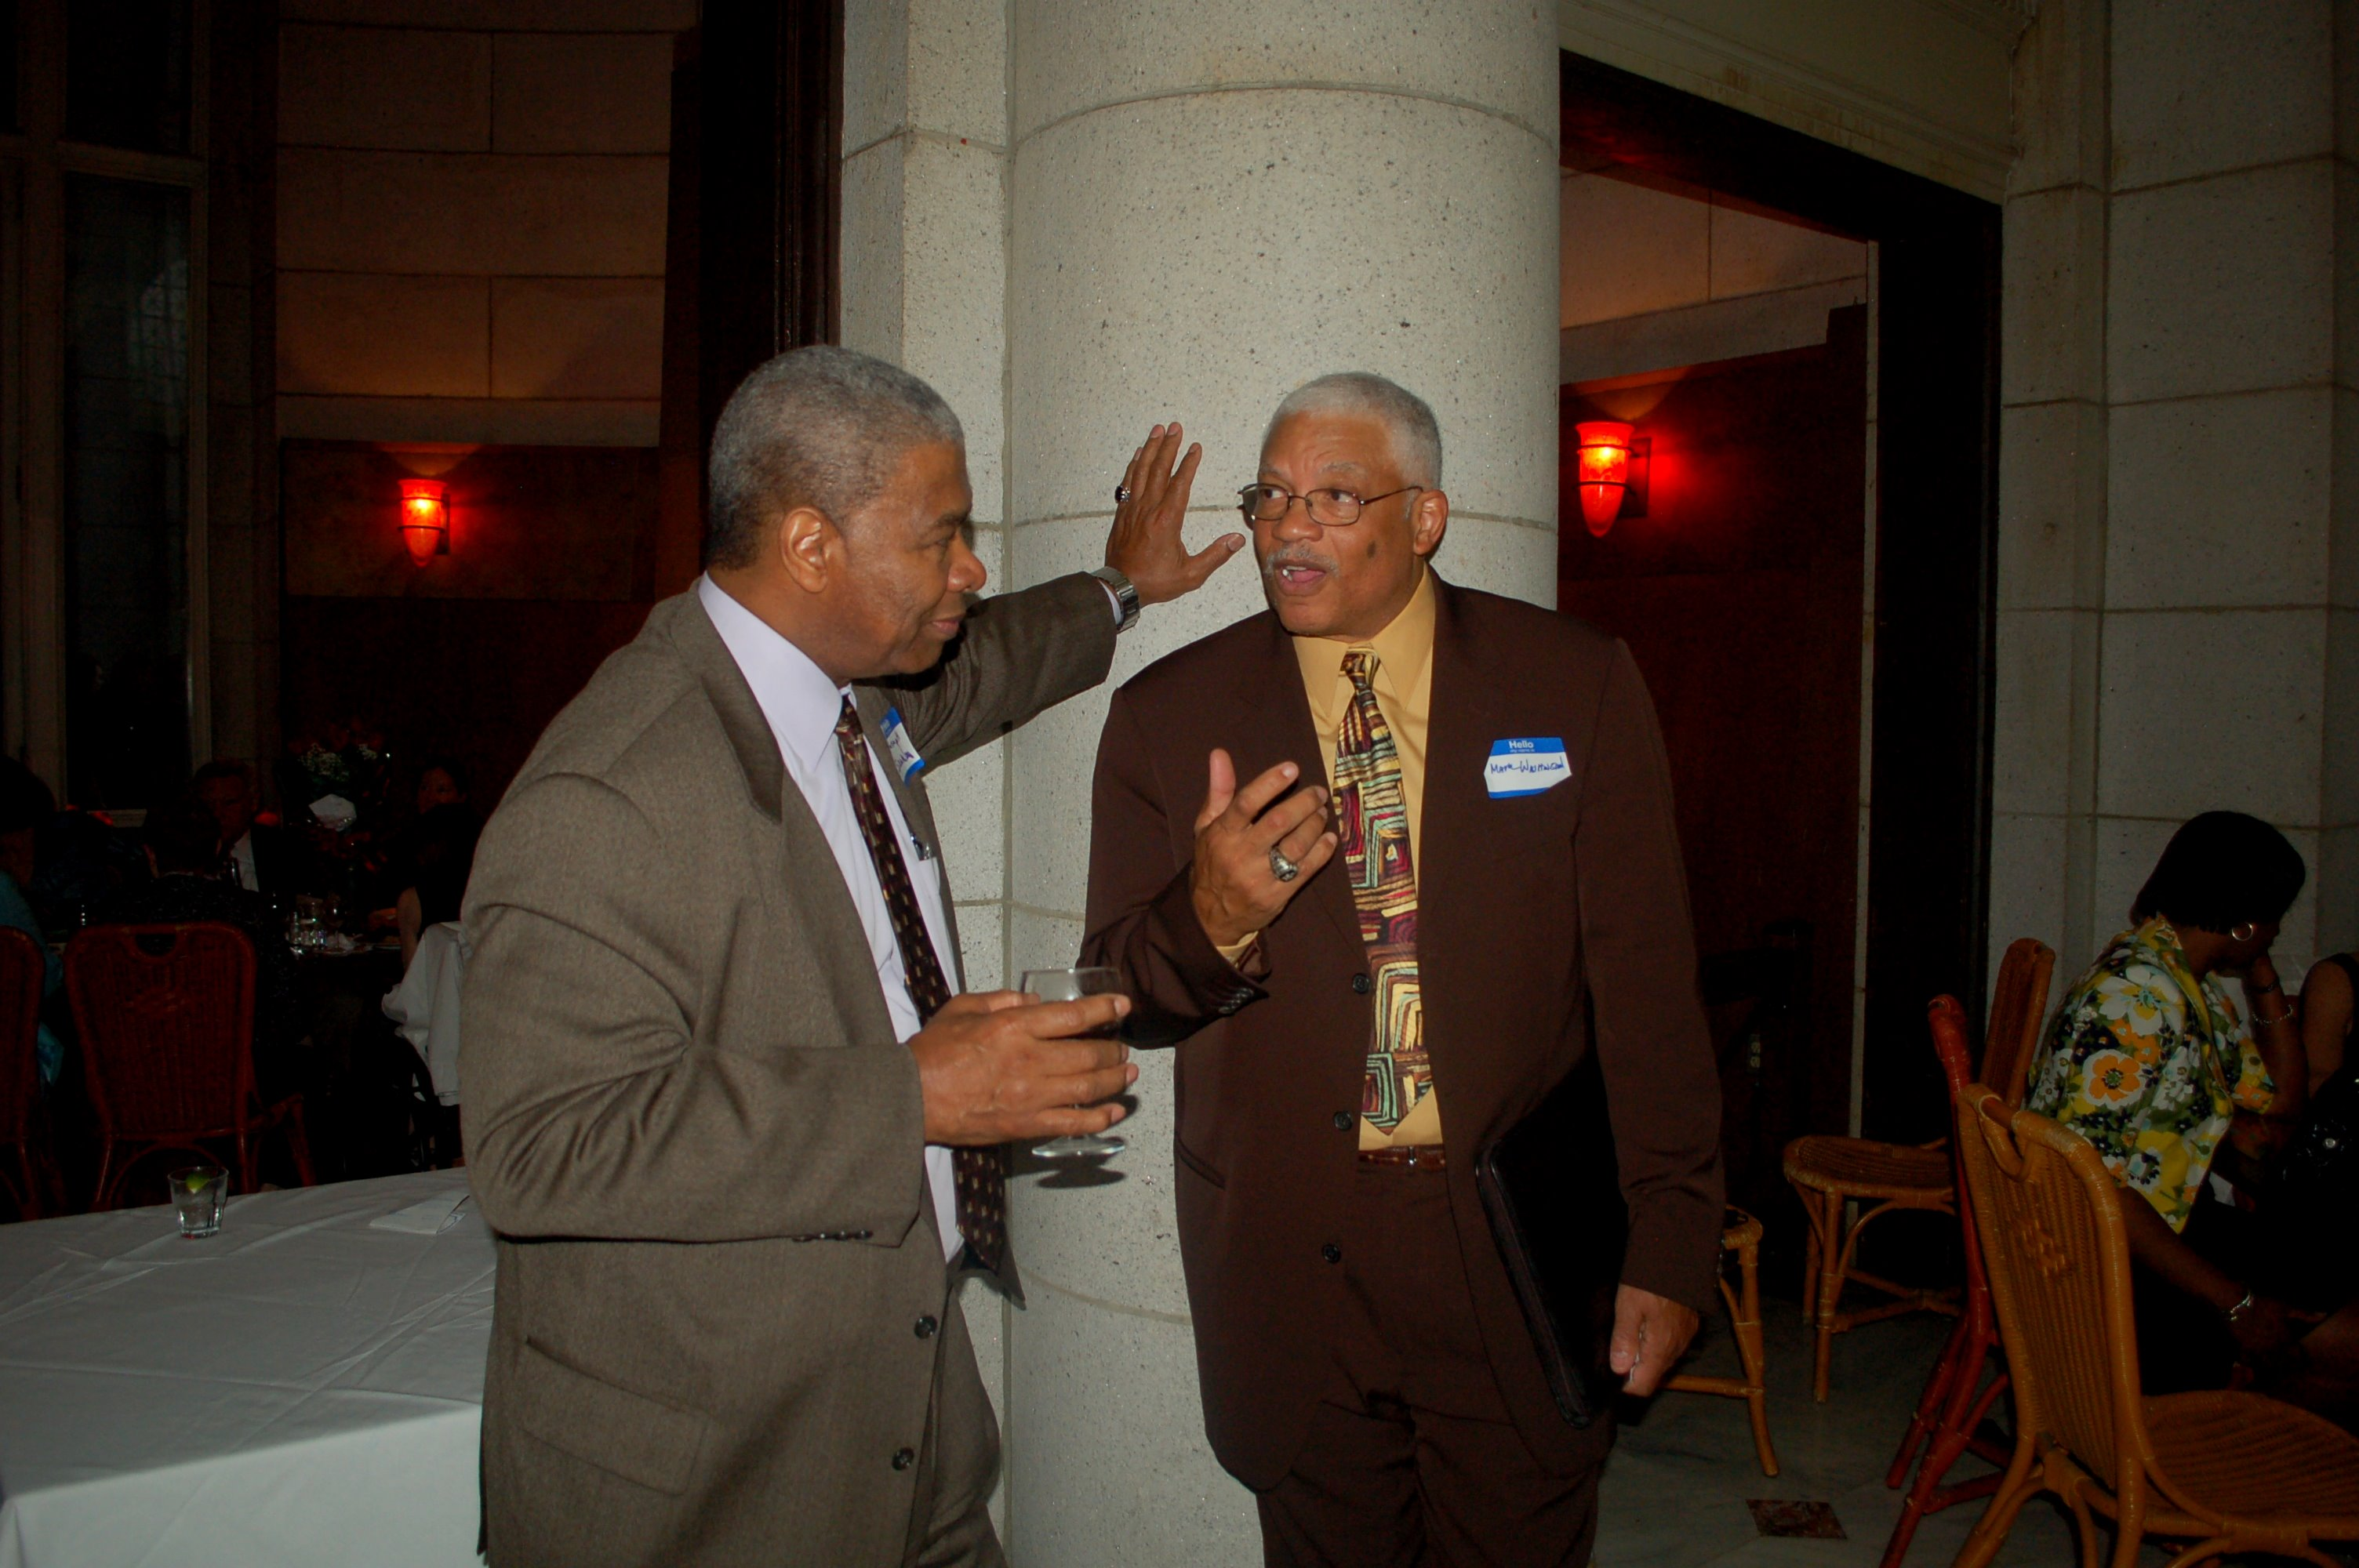 05-2010-joe-searles-and-mr-washington.jpg